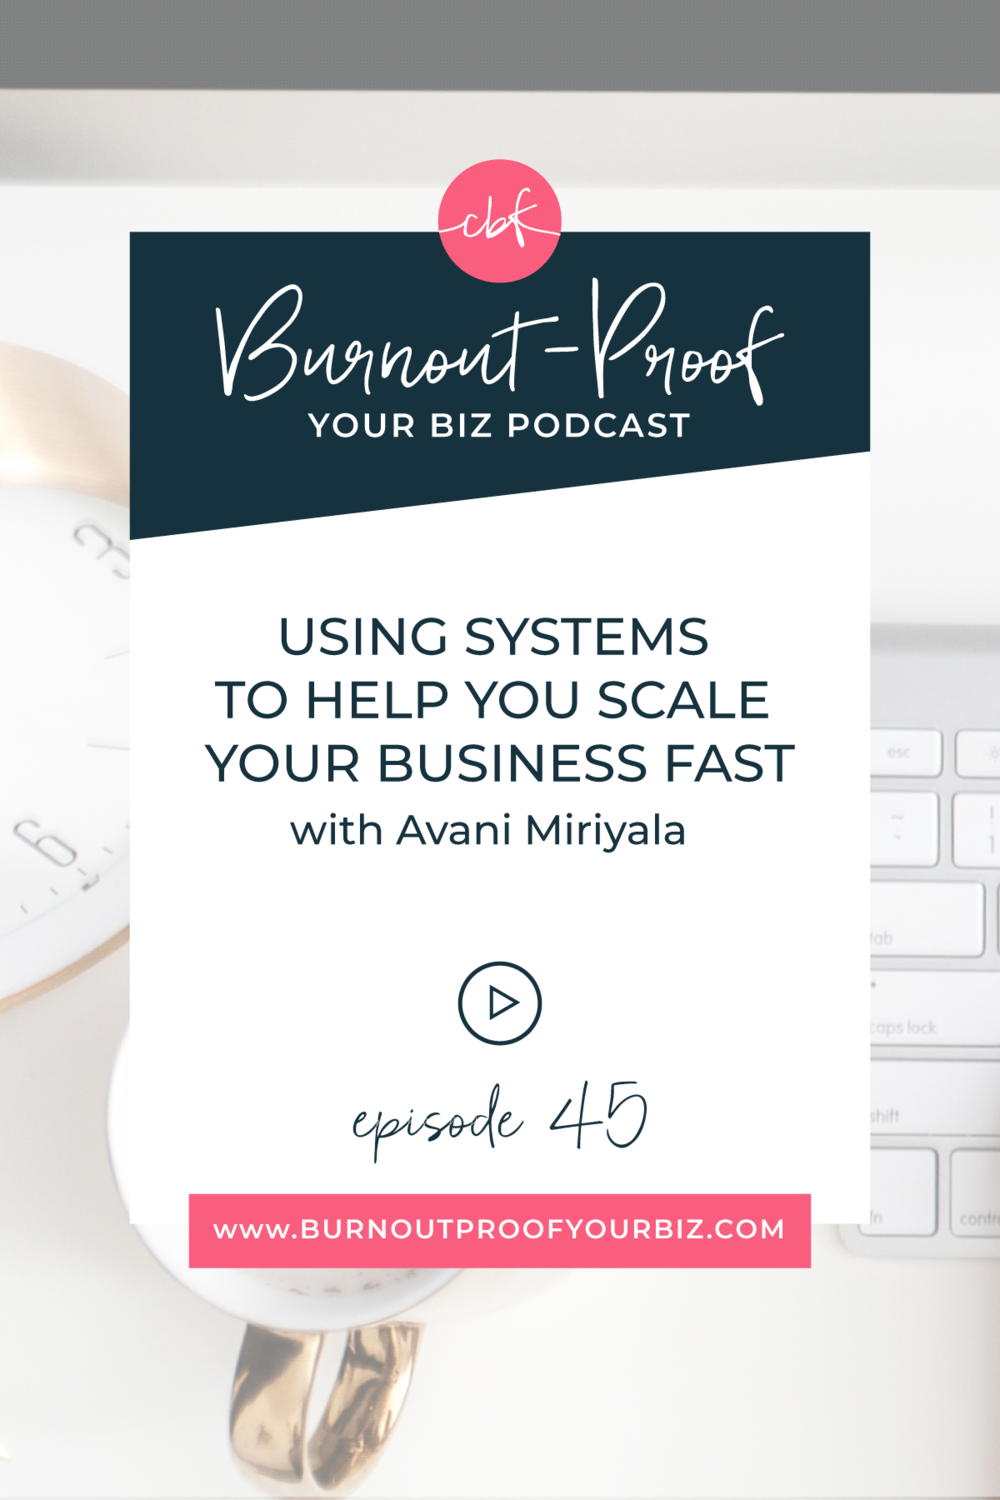 Burnout-Proof Your Biz Podcast with Chelsea B Foster | Episode 045 - Using Systems to Help You Scale Your Business Fast with Avani Miriyala | Learn how to run your biz and live your dream life on your own terms without the fear of burnout. ||| Systems for Freelancers | Systems for creatives | Scaling your business | How to scale your business | Niching down | 6-figure business | Scale to 6-figures | Becoming an Expert | Thought leader | Efficiency for small businesses | Systems to be more efficient | How to be more efficient | Using technology to help you be more efficient